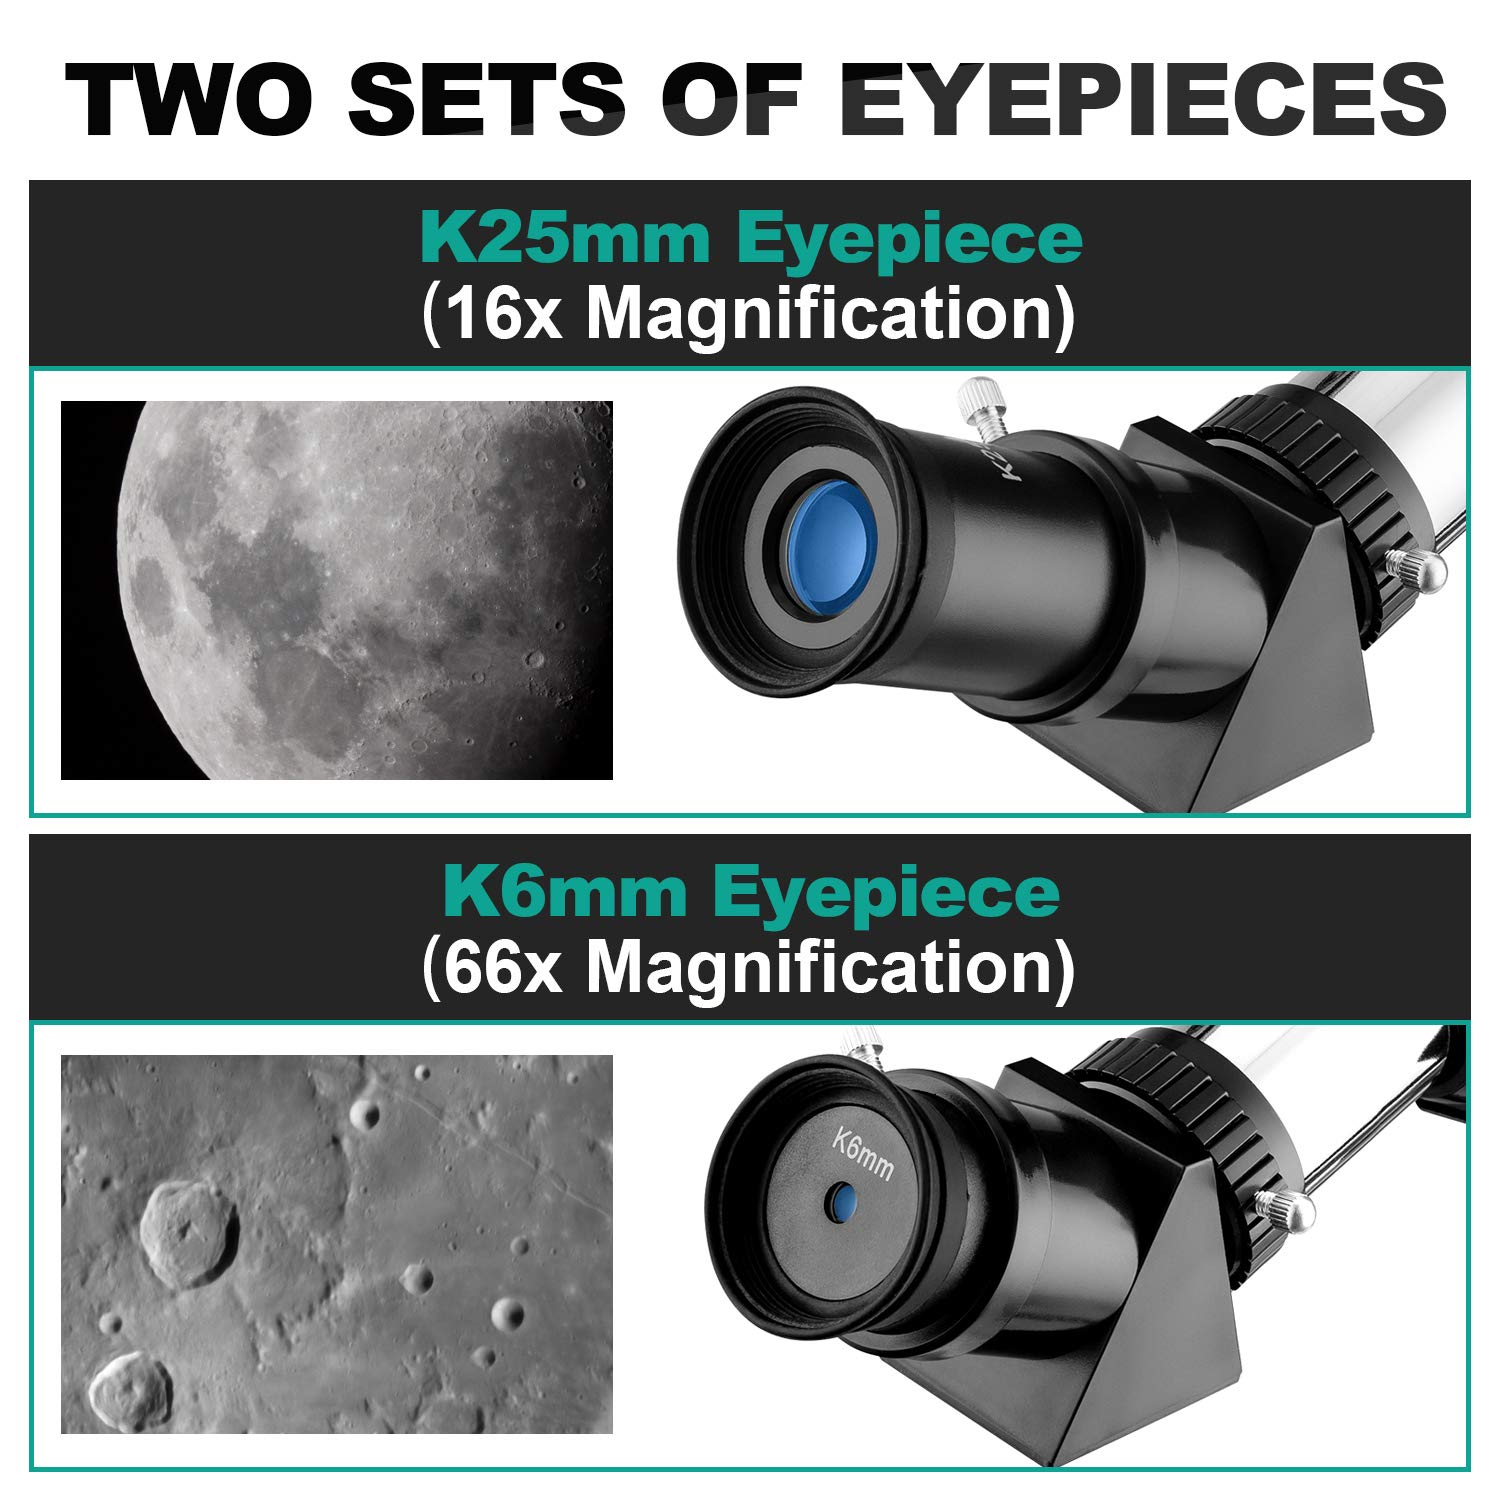 MAXLAPTER Telescope for Kids and Beginners, 70mm Travel Refractor Telescope for Astronomy with Adjustable Tripod, Smartphone Adapter, Camera Shutter Wire Control, Backpack by MAXLAPTER (Image #3)